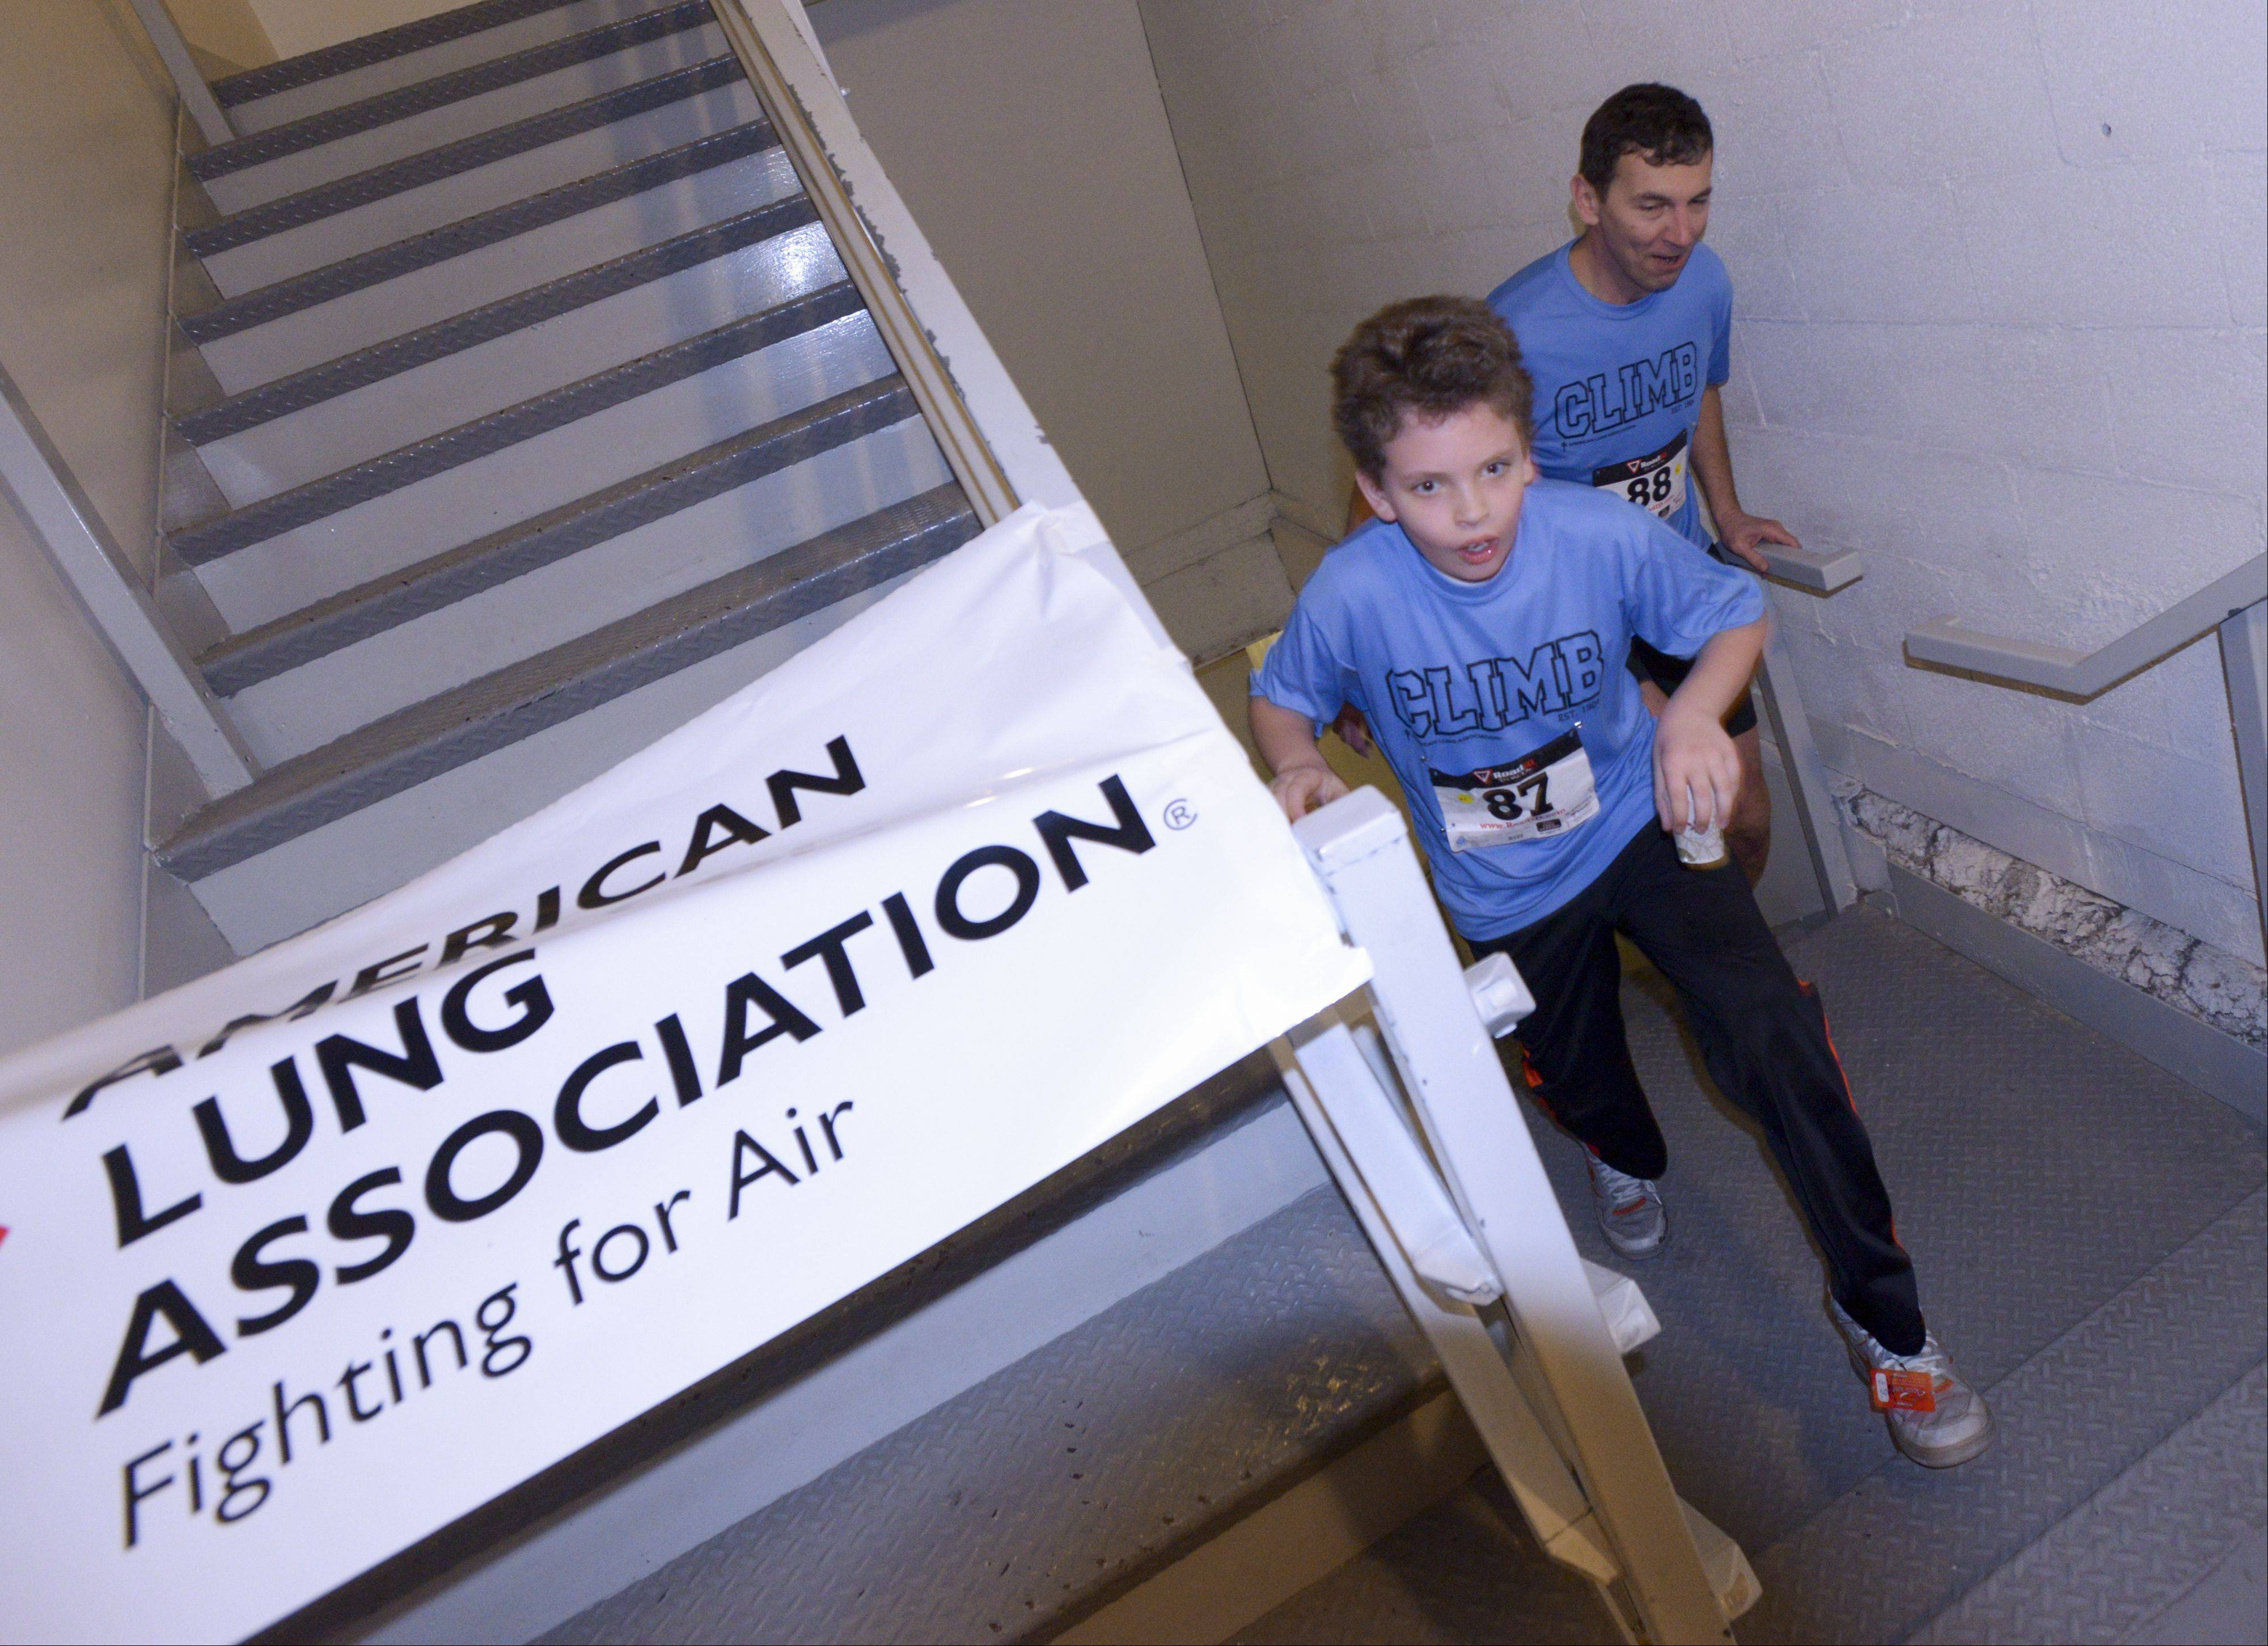 Frank Finnegan, 11, of Darien reaches the top a few steps ahead of his dad, Rob, during Sunday's Fight for Air Climb at the Oakbrook Terrace Tower to benefit the American Lung Association. The tower is the tallest building in the suburbs.